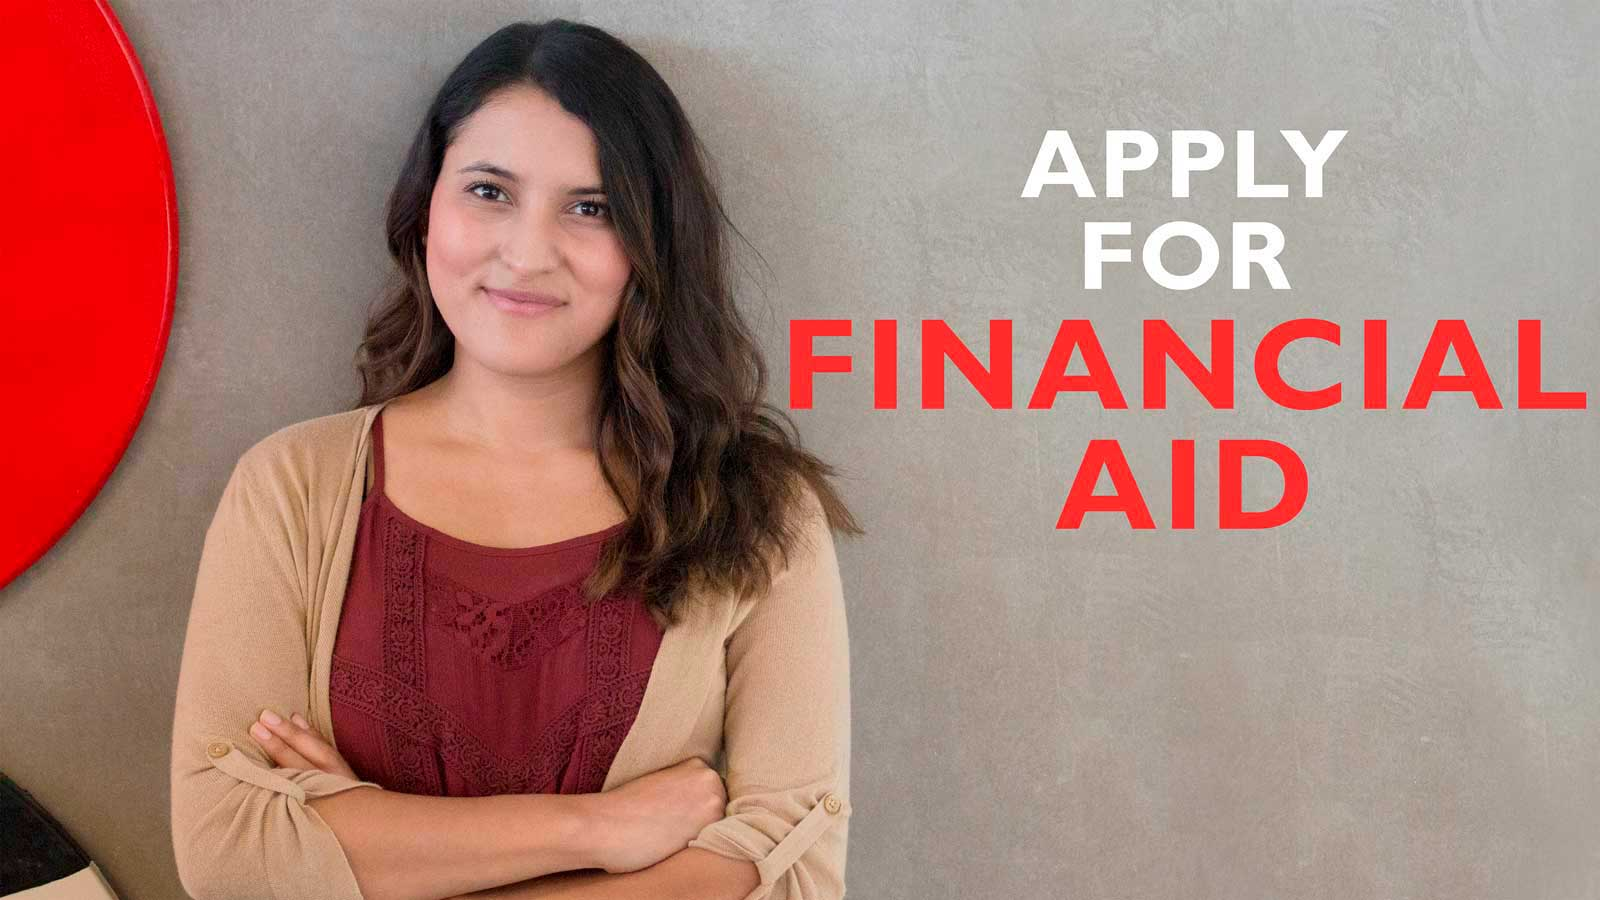 Financial Aid applications due by March 2nd